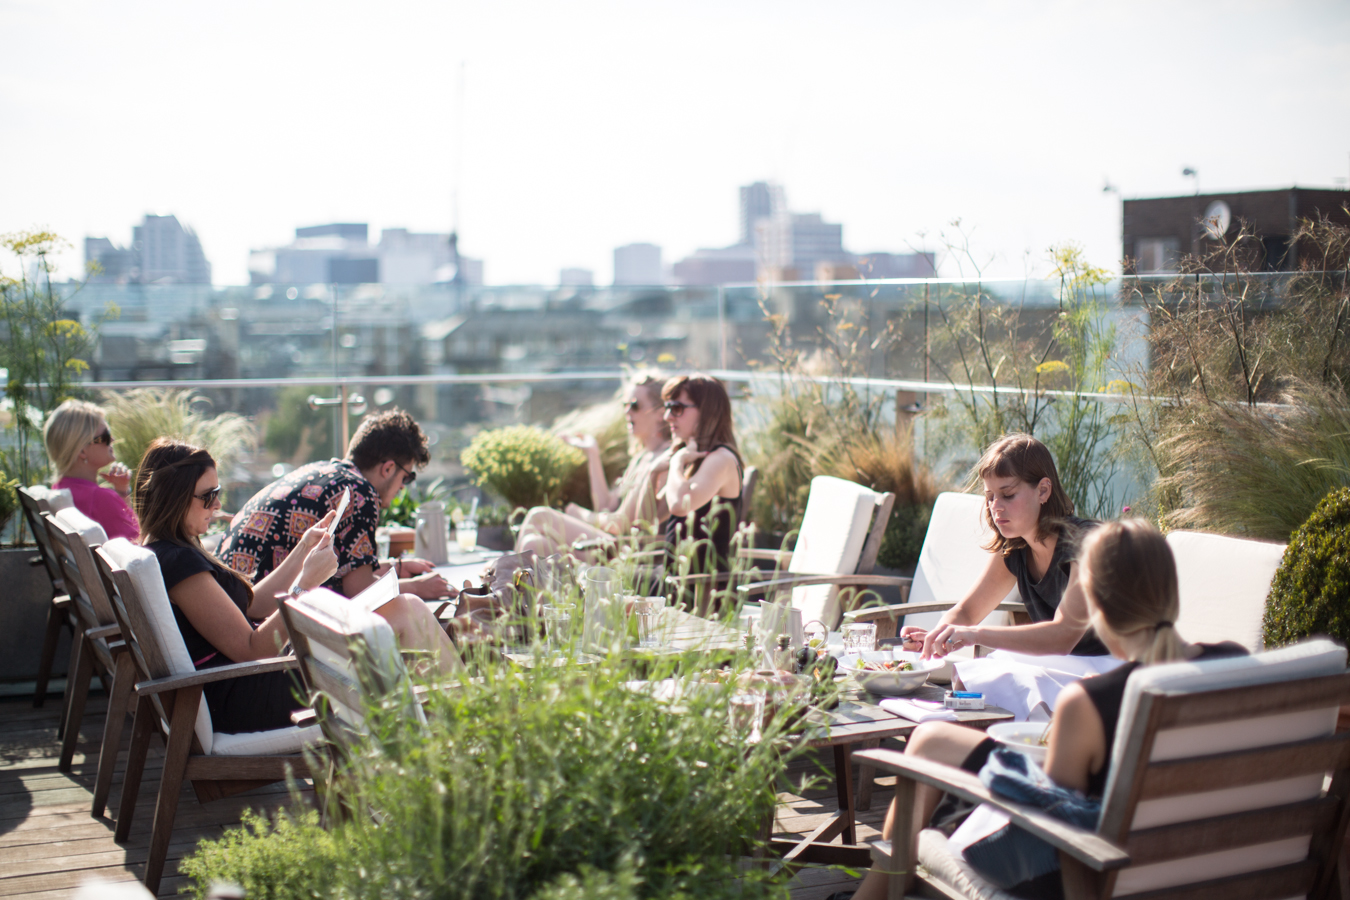 Boundary Rooftop Bar at The Boundary Project